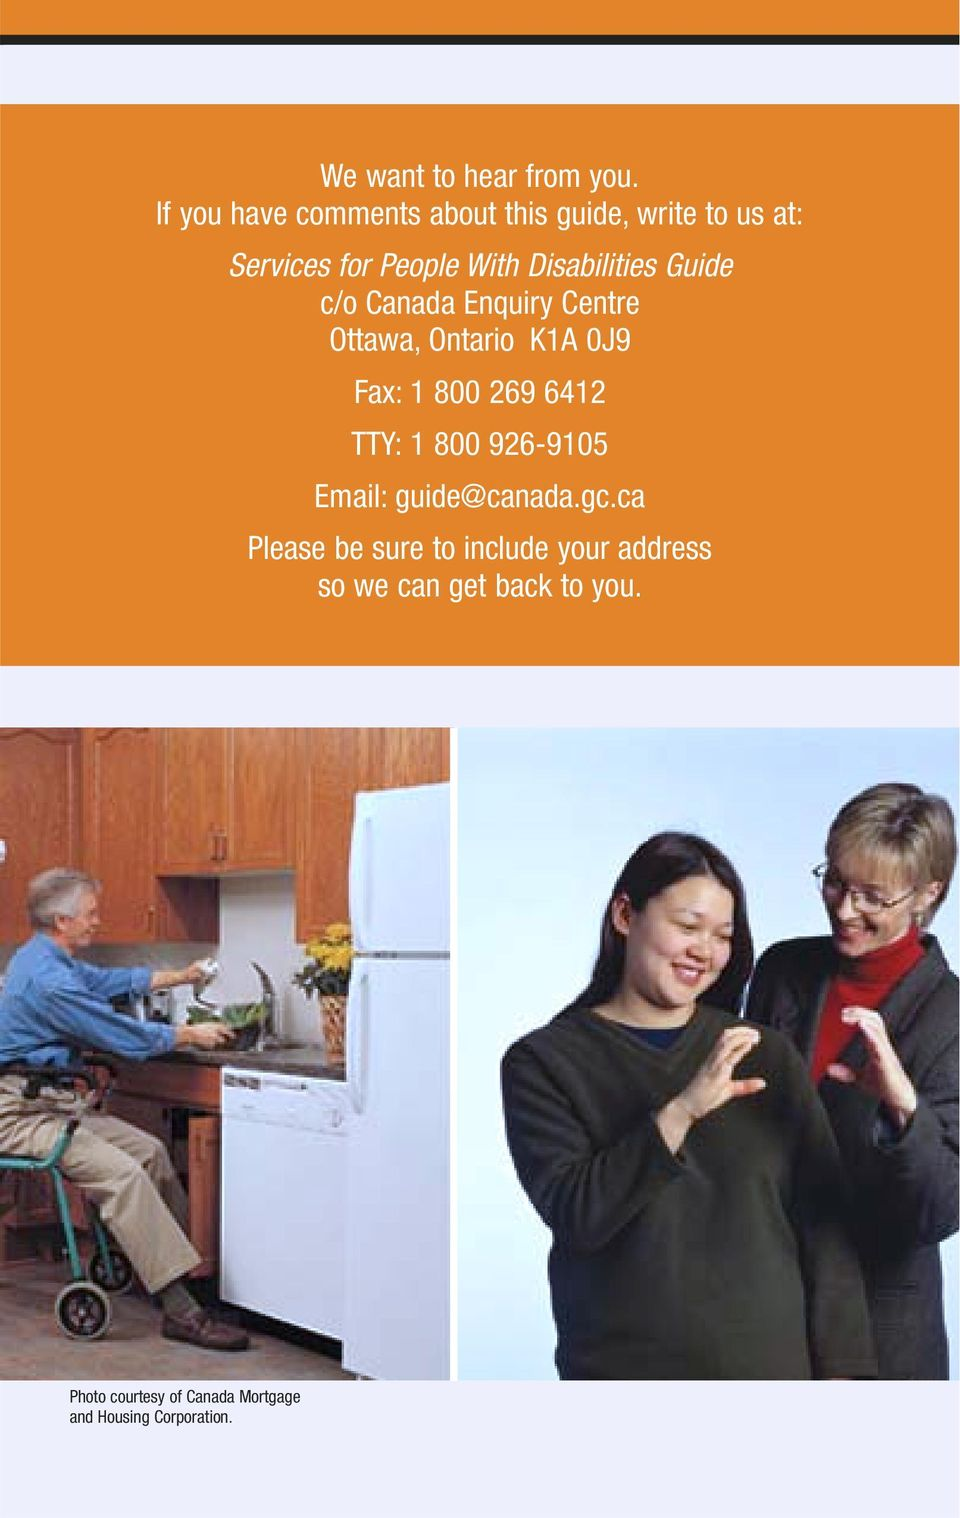 Disabilities Guide c/o Canada Enquiry Centre Ottawa, Ontario K1A 0J9 Fax: 1 800 269 6412